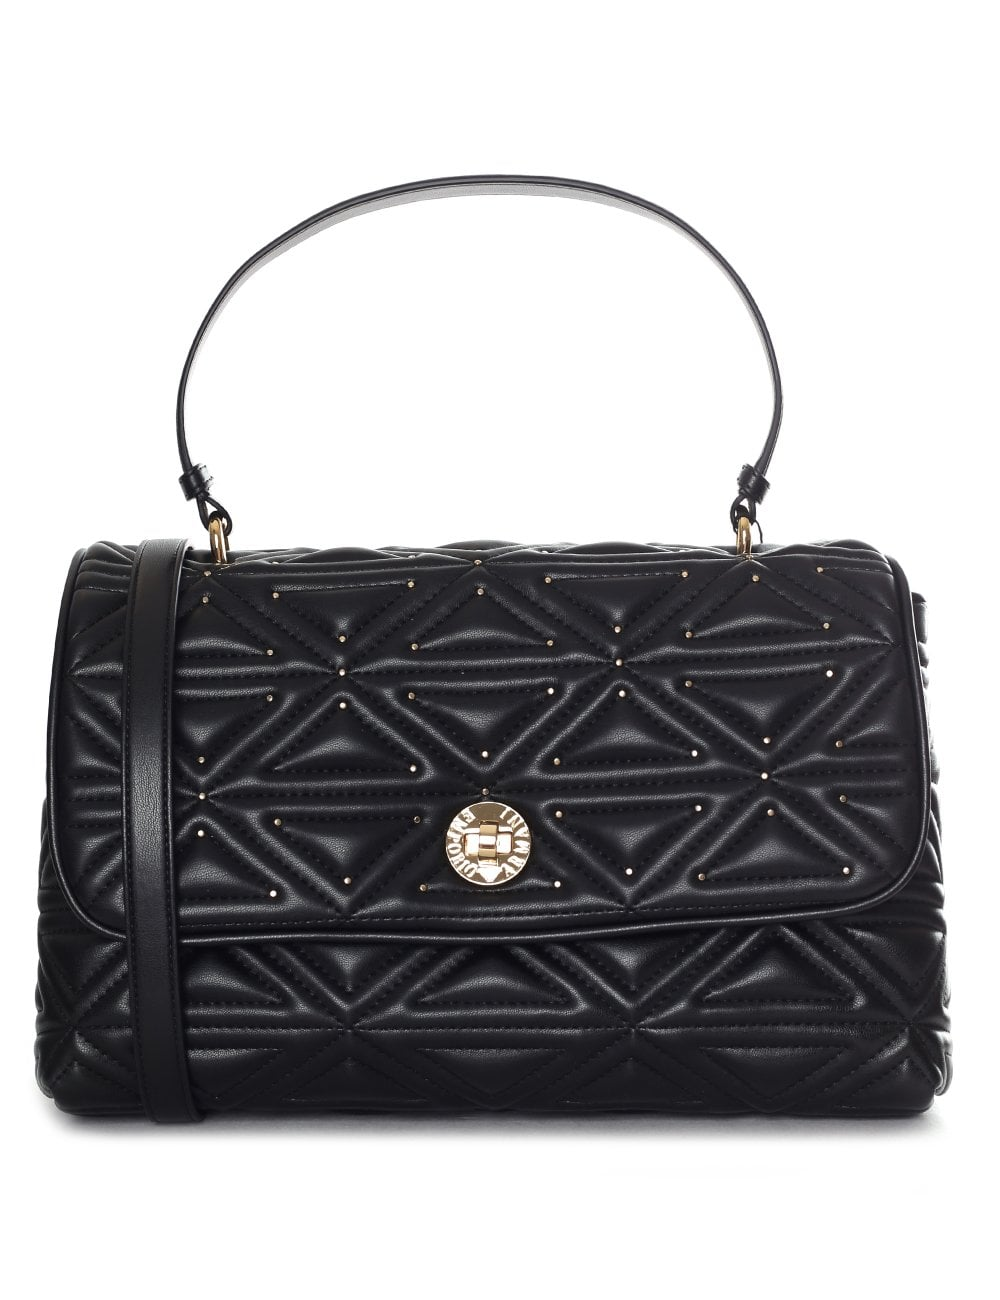 1627f4d52383 Emporio Armani Women s Quilted Stud Shoulder Bag Black